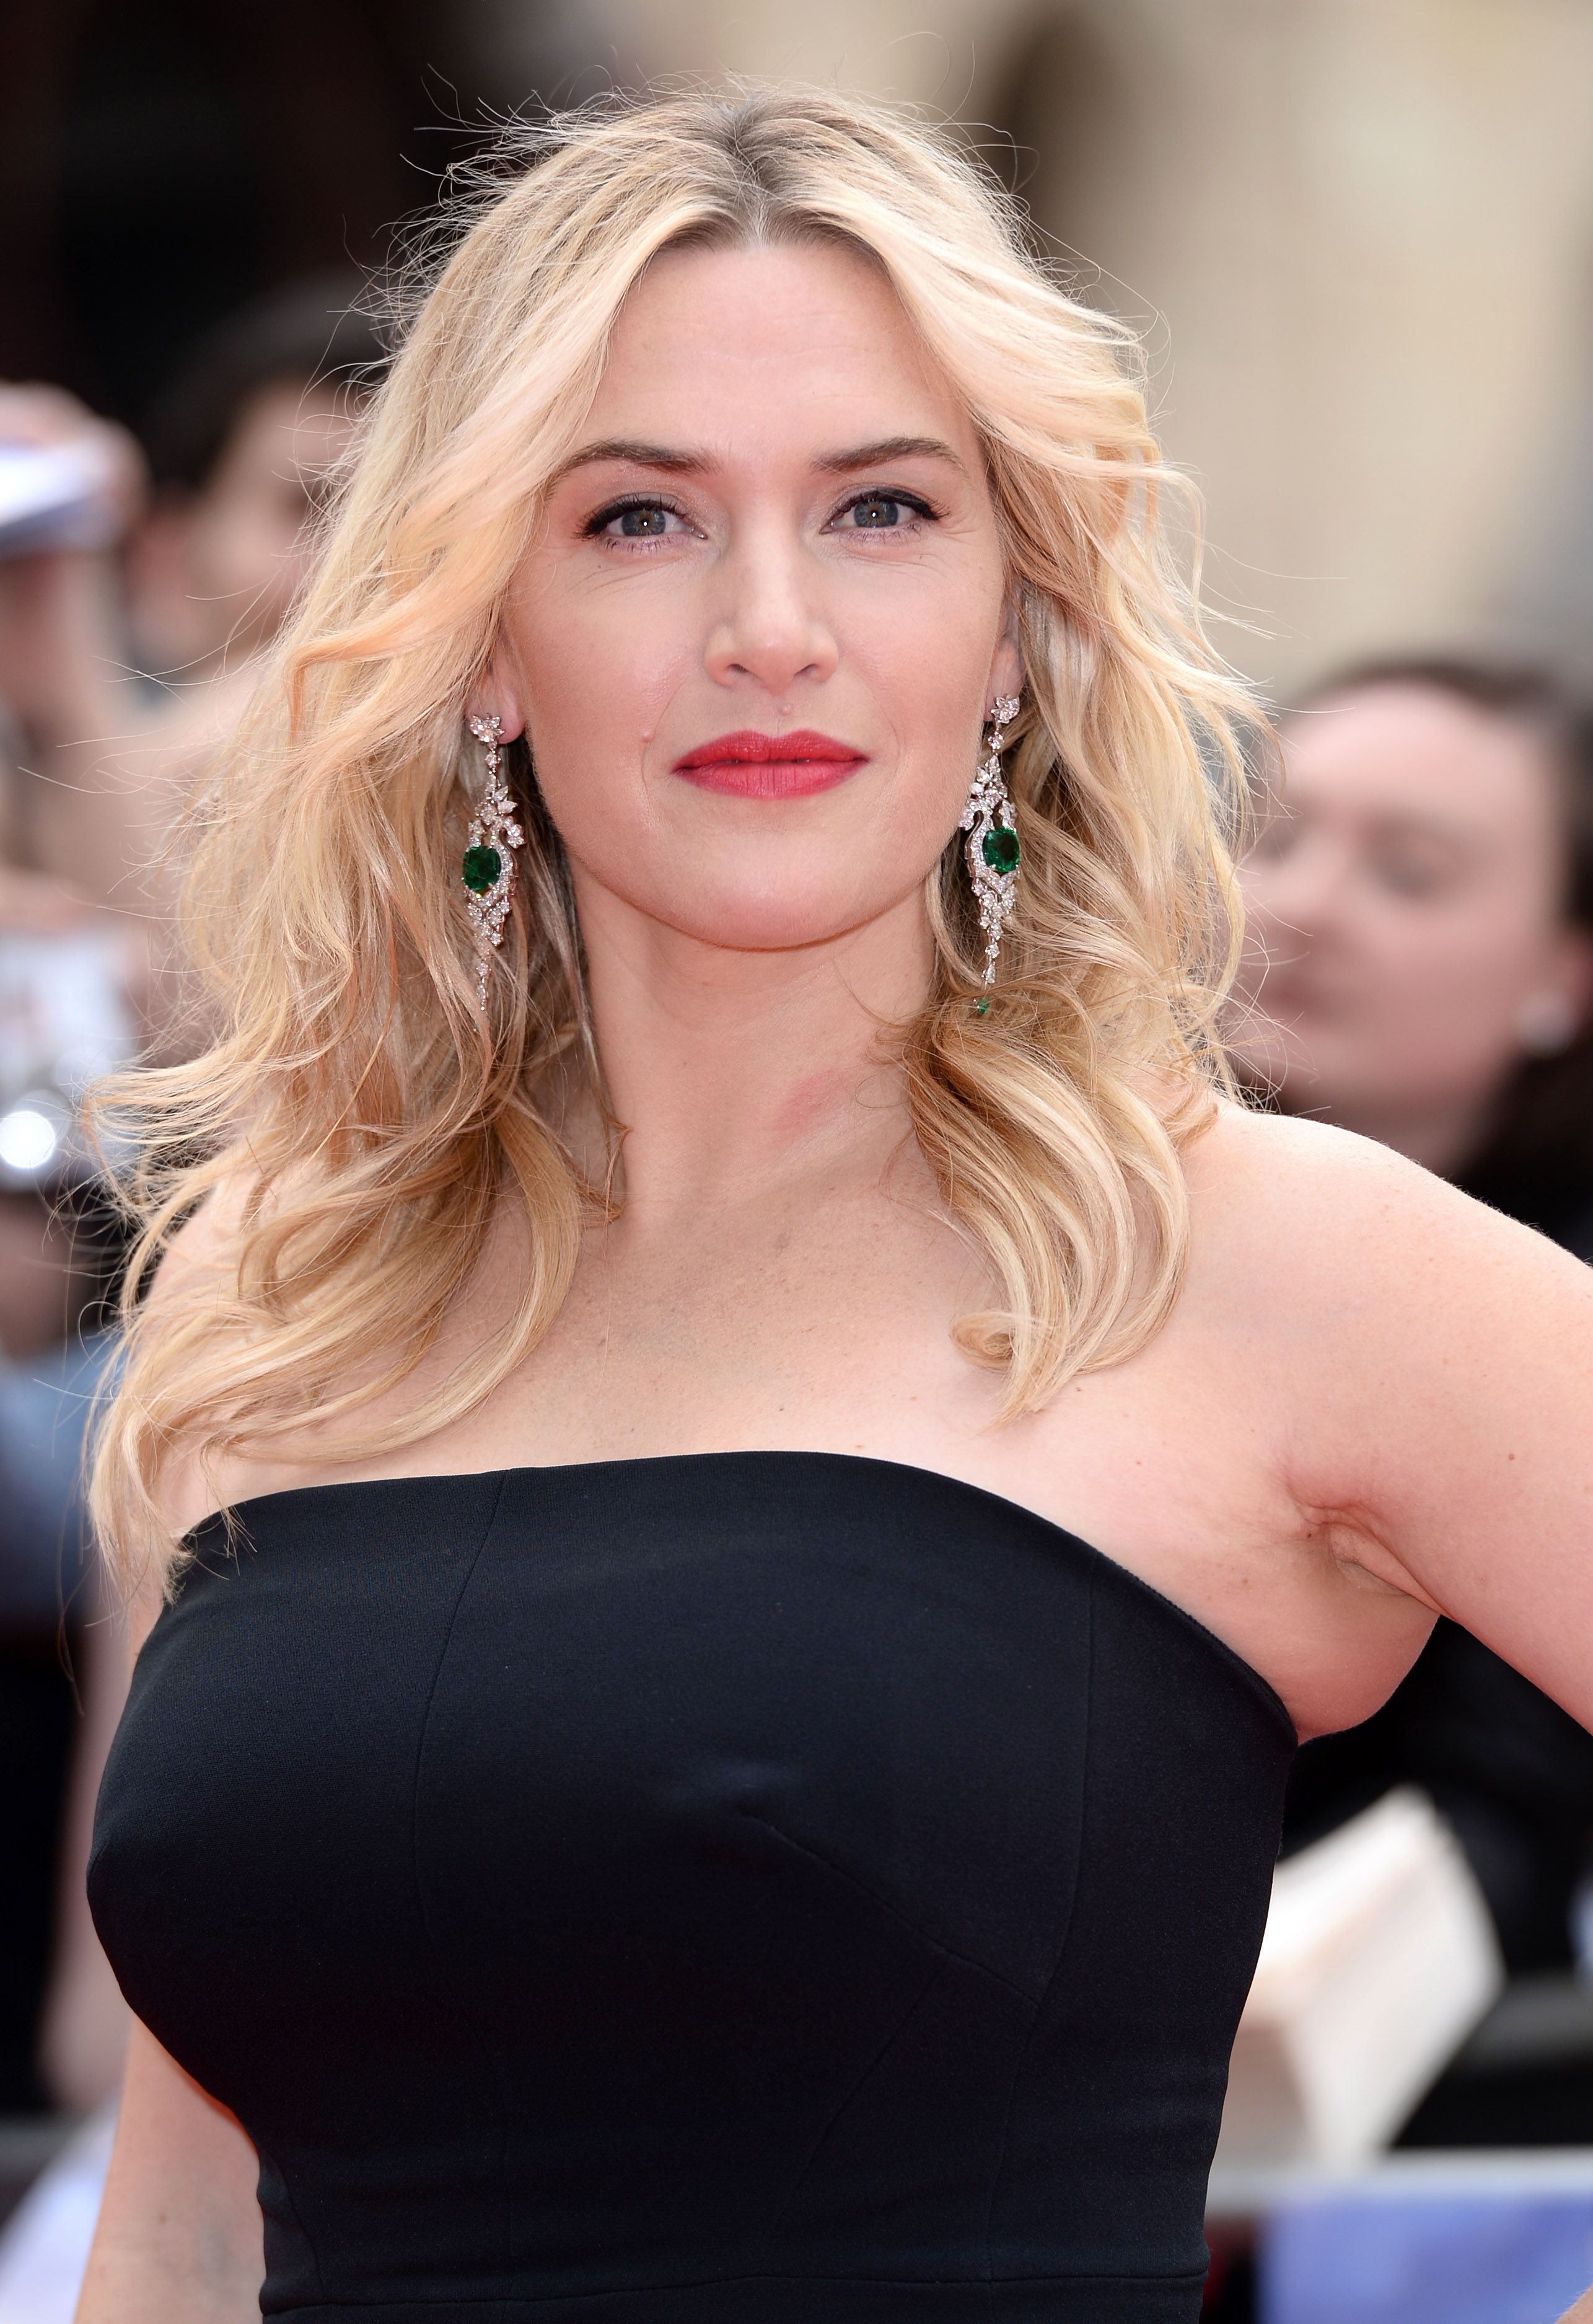 "<p>Winslet had been such a dedicated waxer through the years, it once required her to go the faux route for a role. ""I had to grow the hair down there,"" <a target=""_blank"" href=""http://www.thefrisky.com/2009-06-03/quote-of-the-day-kate-winslet-on-donning-a-merkin-for-the-reader/"">she told <em>Allure</em></a><em><a target=""_blank"" href=""http://www.thefrisky.com/2009-06-03/quote-of-the-day-kate-winslet-on-donning-a-merkin-for-the-reader/""></a></em>. ""But because of years of waxing, as	all of us girls know, it doesn't come back quite the way it used to. They even made me a merkin—a wig—because they were so concerned that I might not be able to grow enough.""<br></p>"